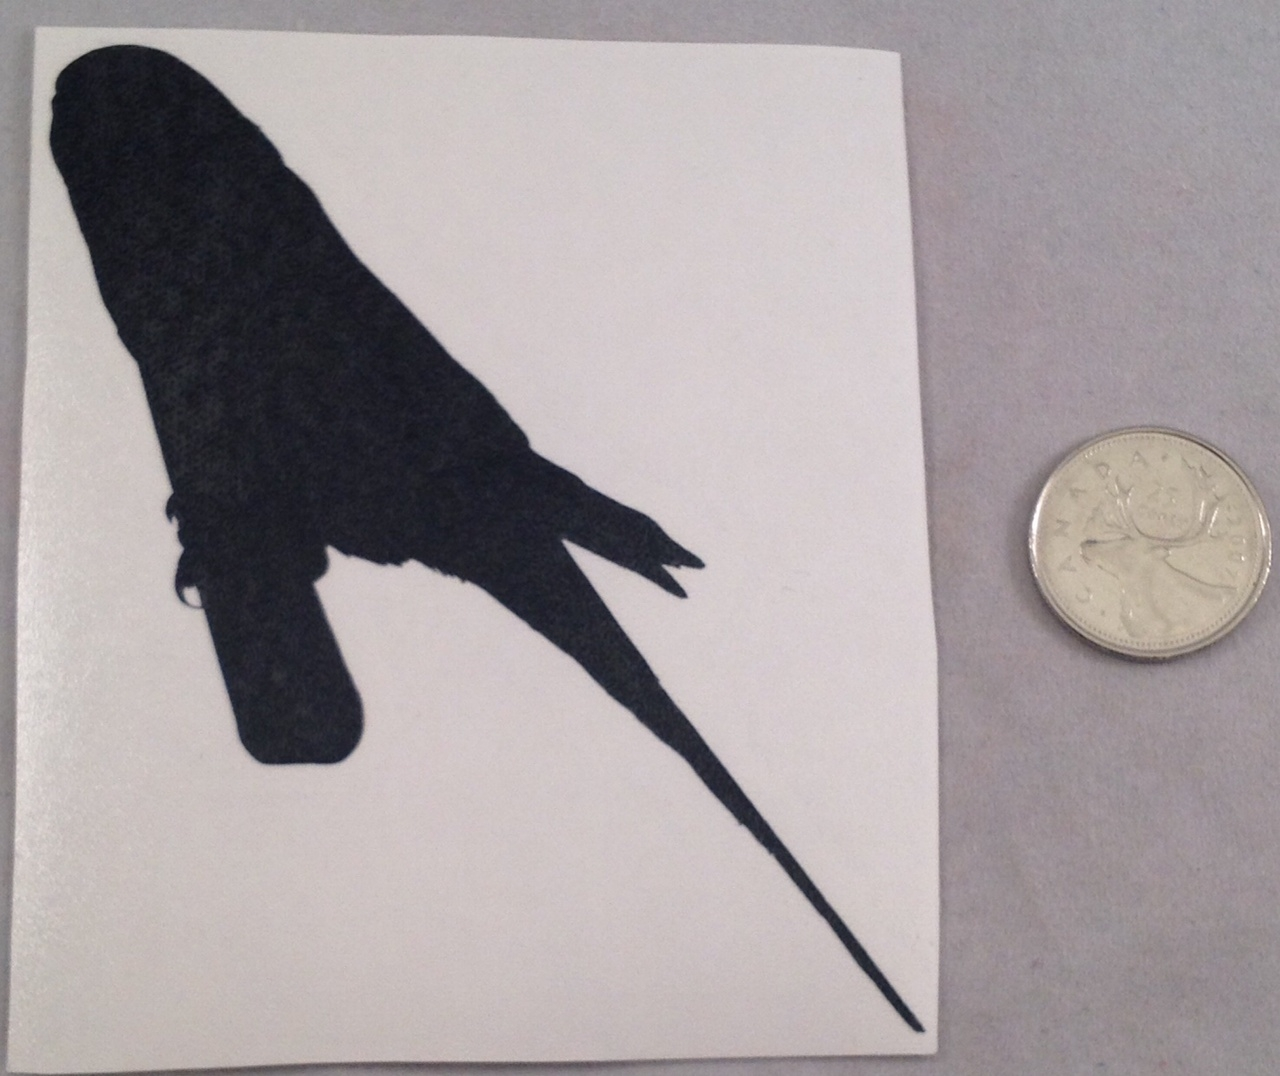 Budgie Silhouette Decal